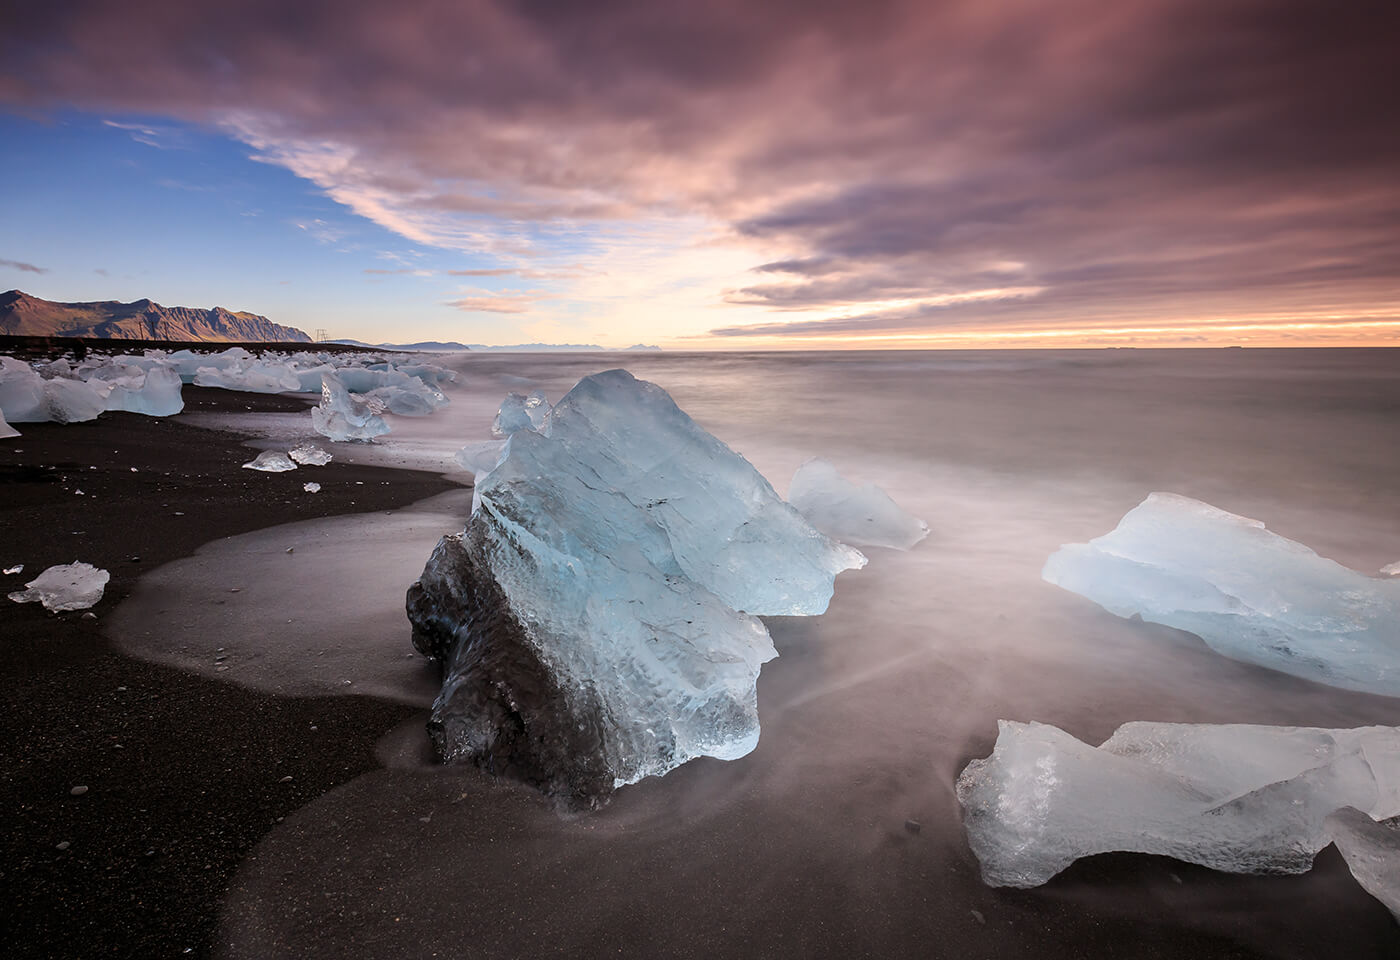 Image of icy formations on a beach by photographer Mitch Pearson-Goff